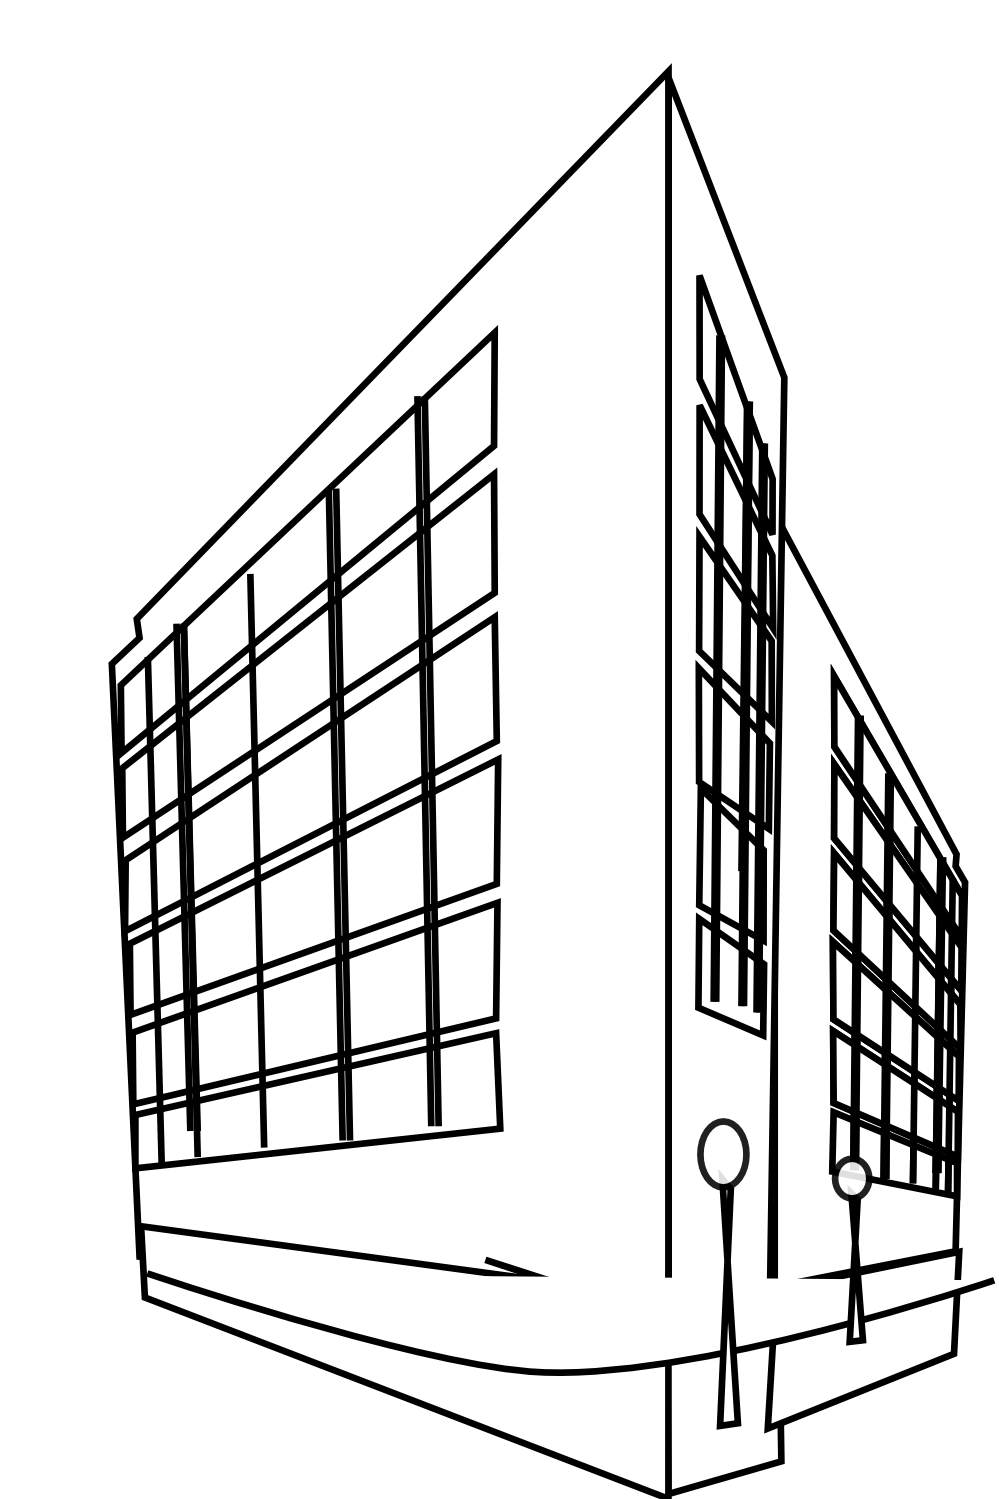 Building blocks clipart black and white clip art black and white library Building Clipart Black And White & Building Black And White Clip ... clip art black and white library